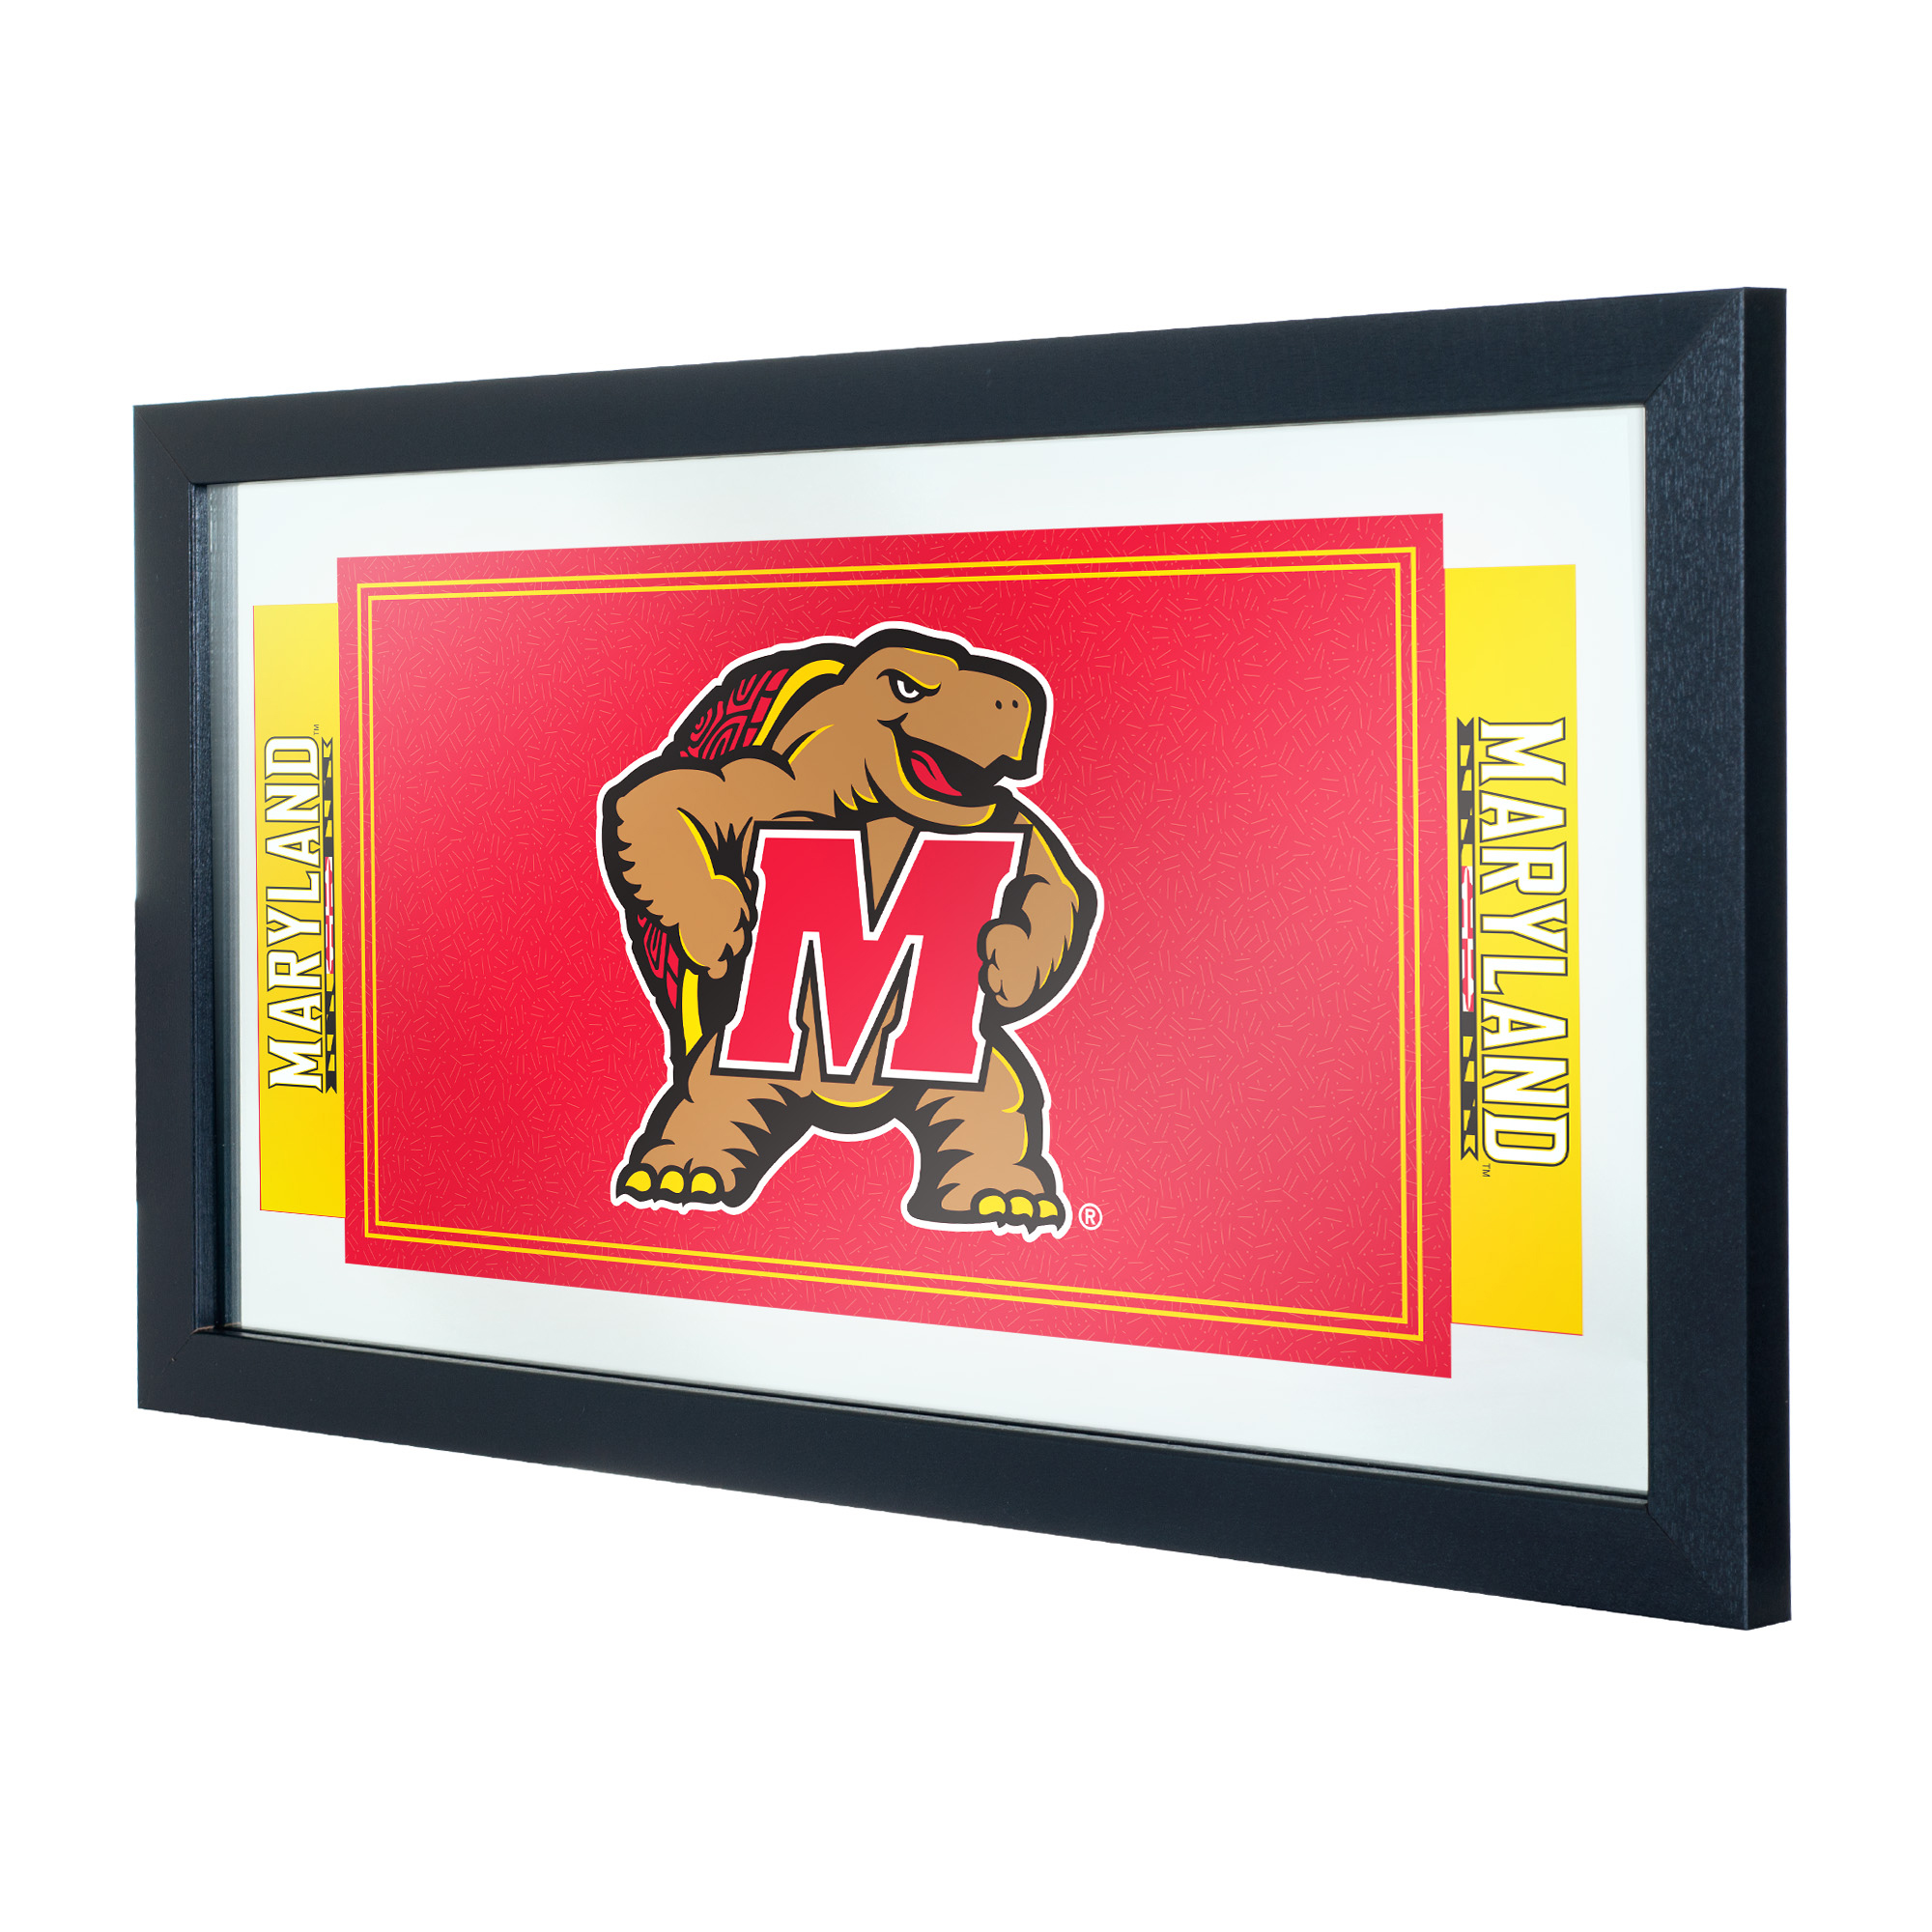 NCAA Maryland University Logo and Mascot Framed Mirror